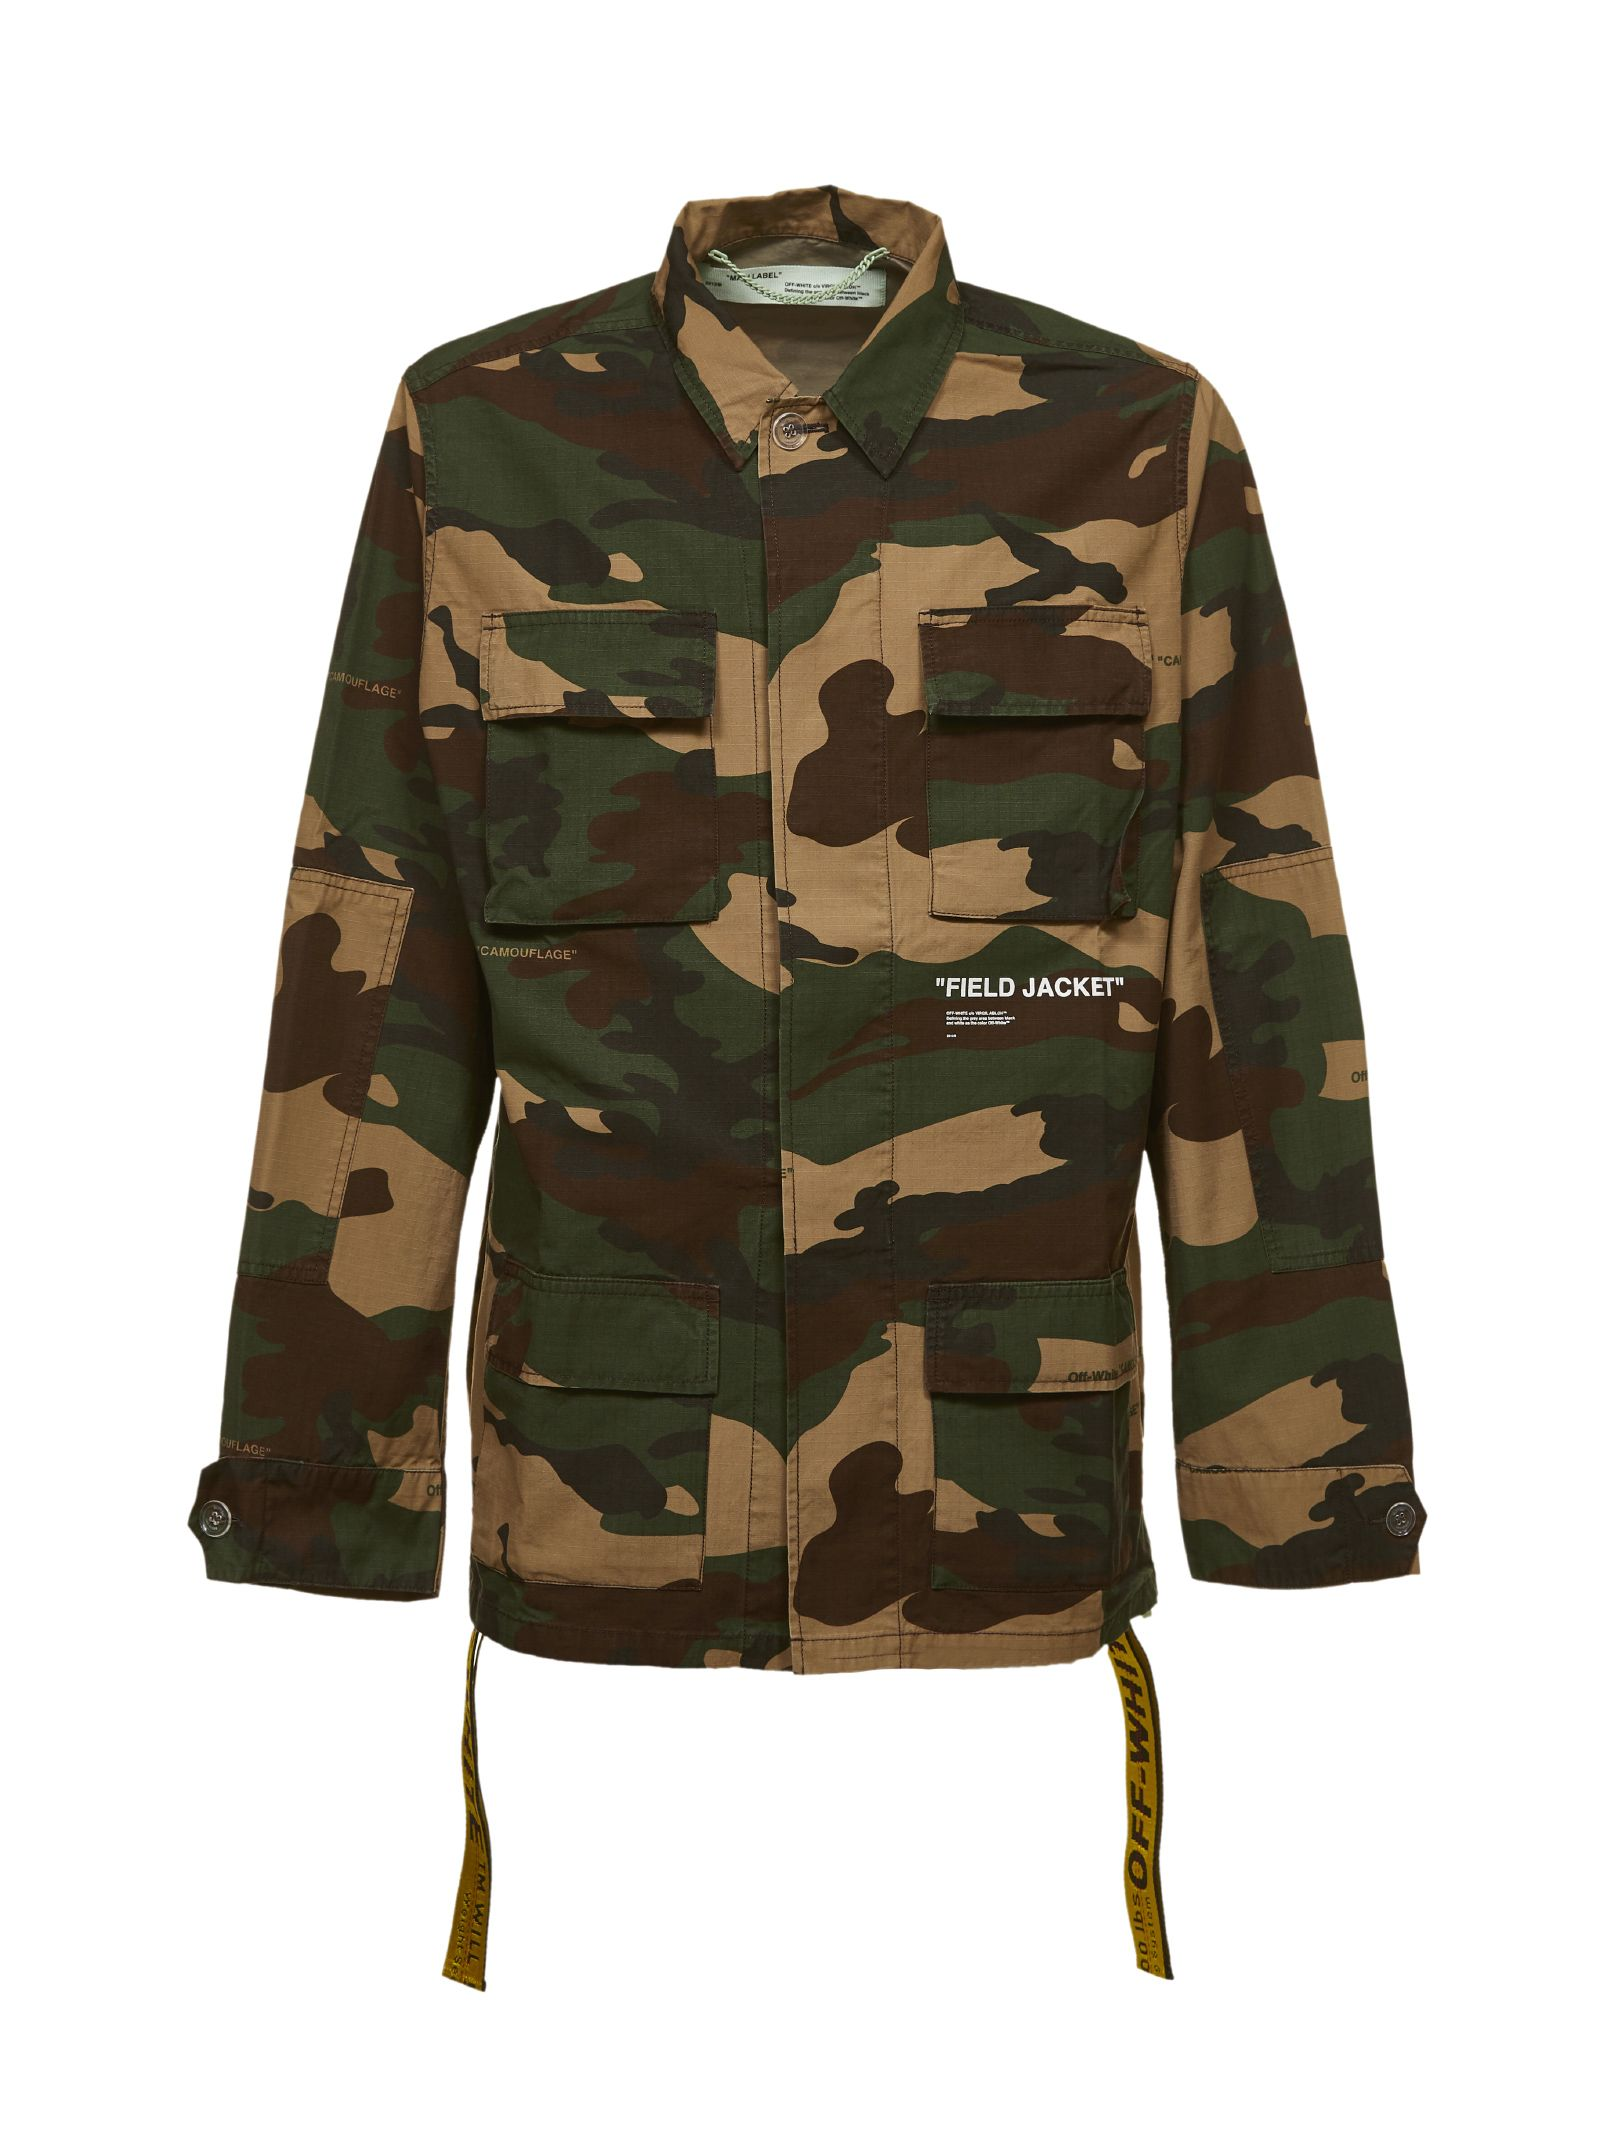 OFF-WHITE ARMY JACKET